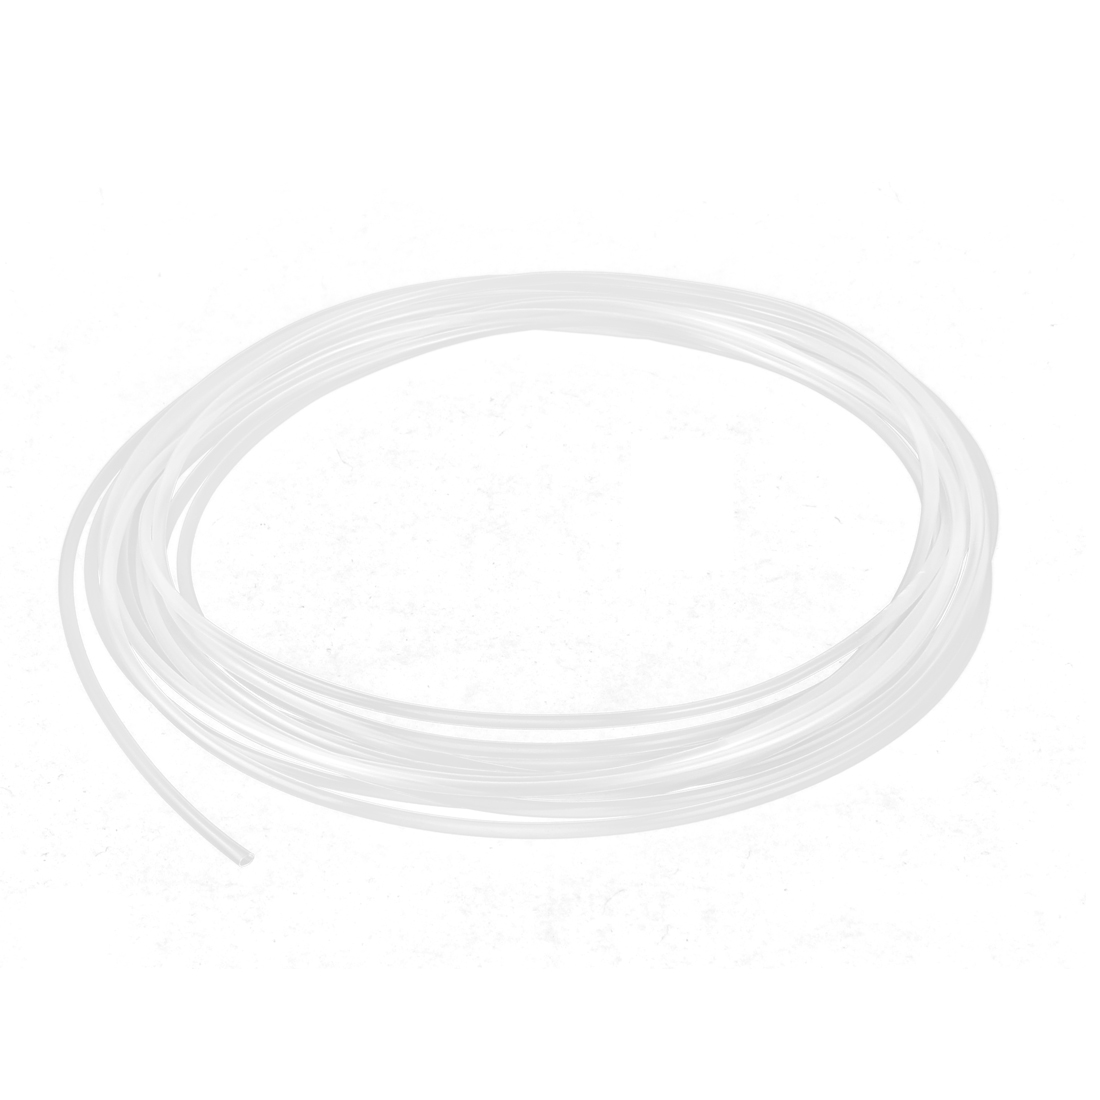 10M 33ft 1.5mm Dia Polyolefin Ratio 2:1 Ultra Thin Heat Shrink Tubing Wire Wrap